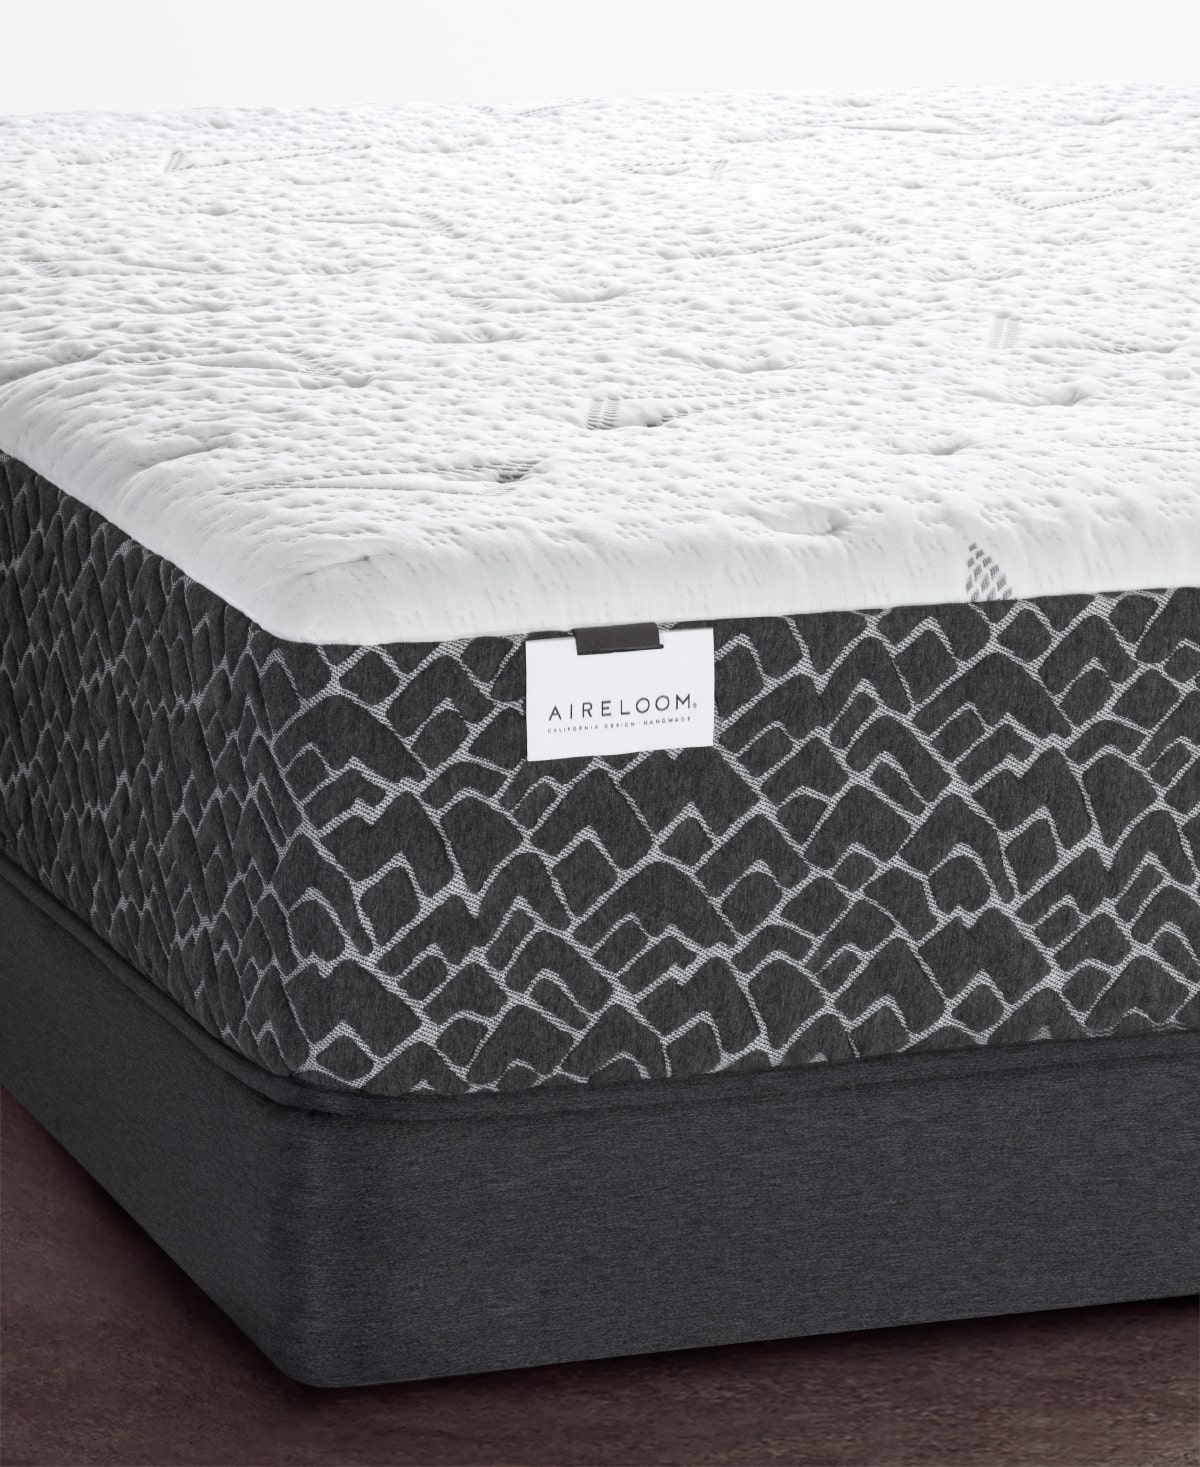 Aireloom Hybrid Mattress Collection